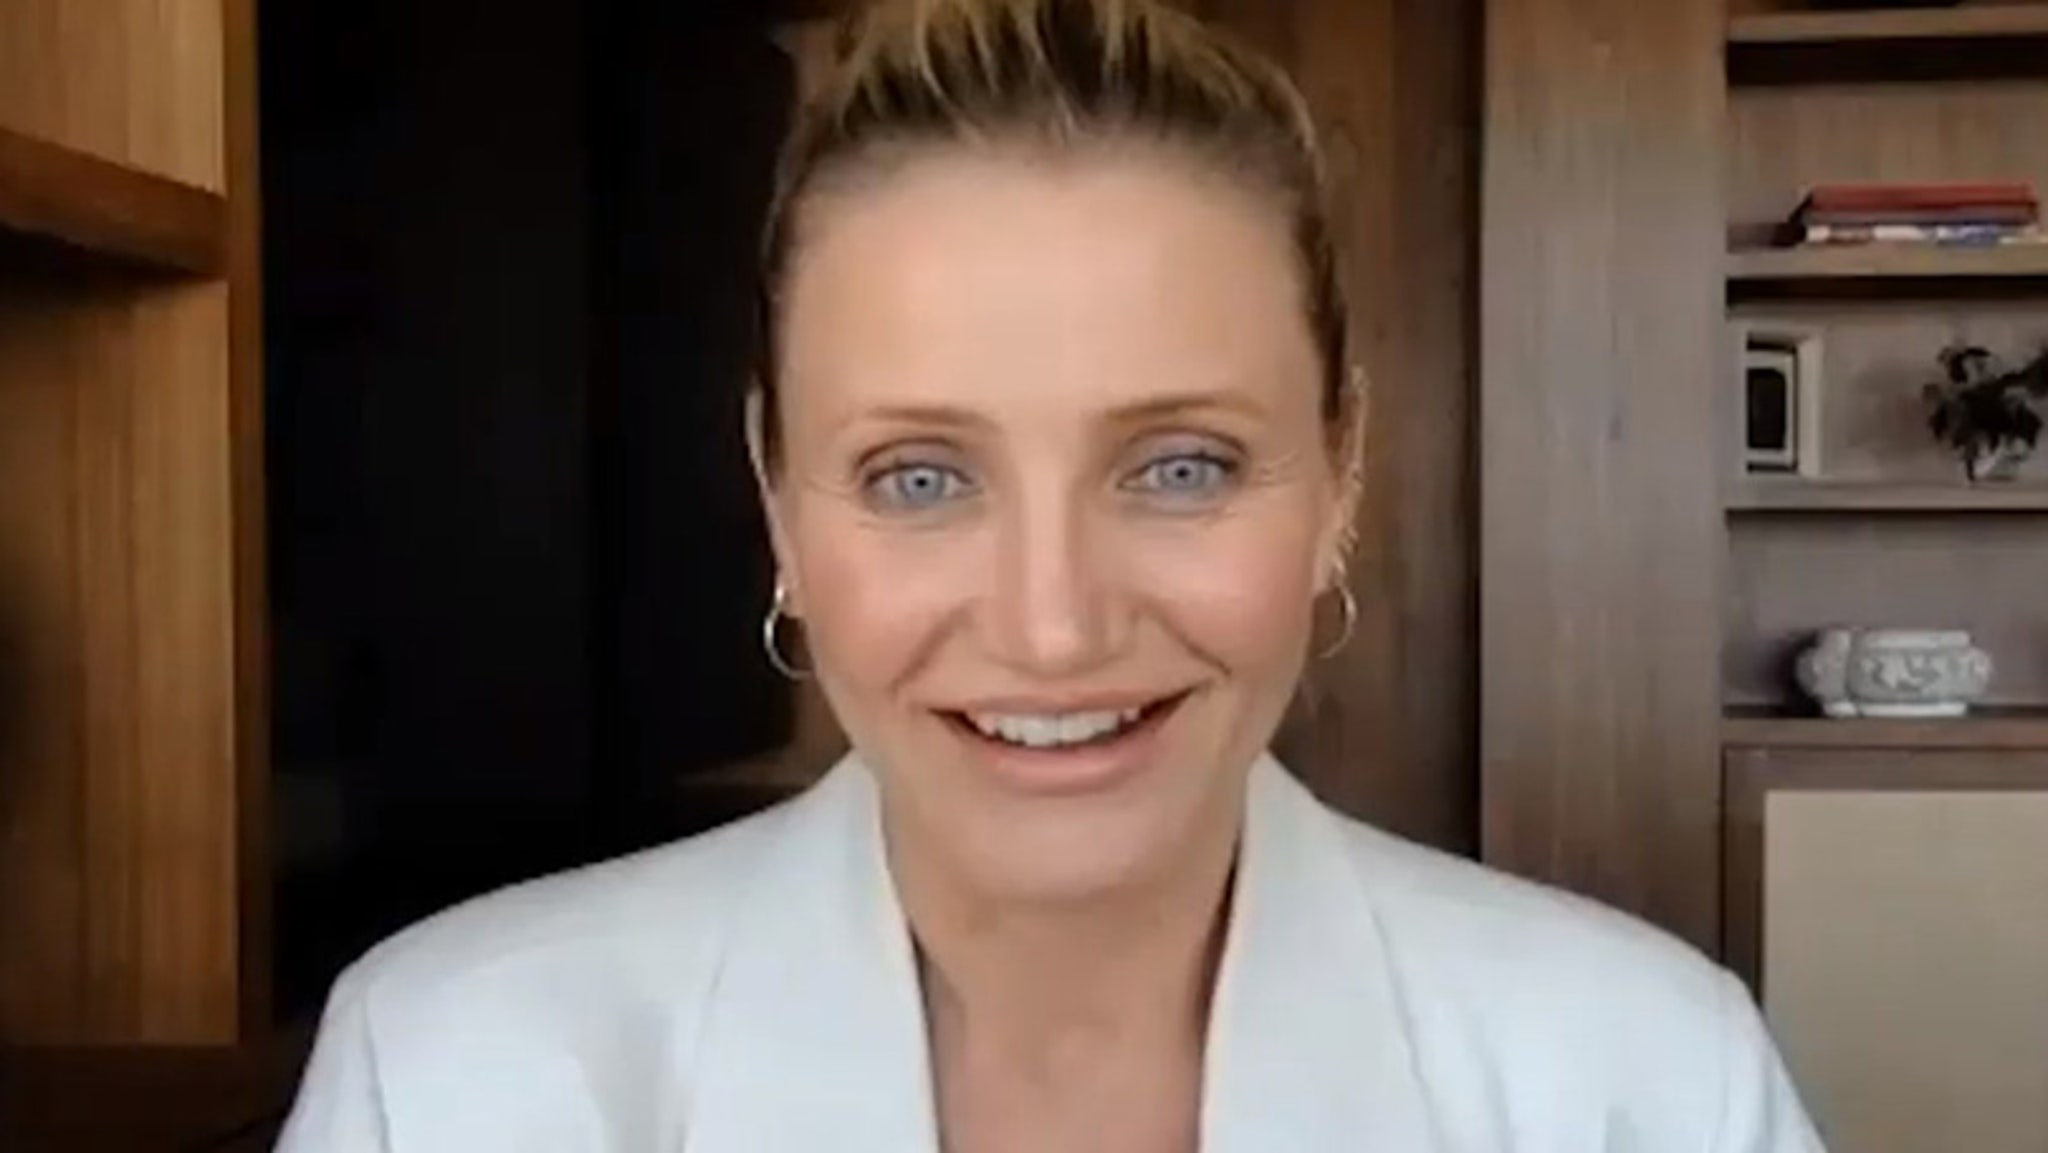 Cameron Diaz Talks Finally Finding 'Peace' by Walking Away from Her Movie Career